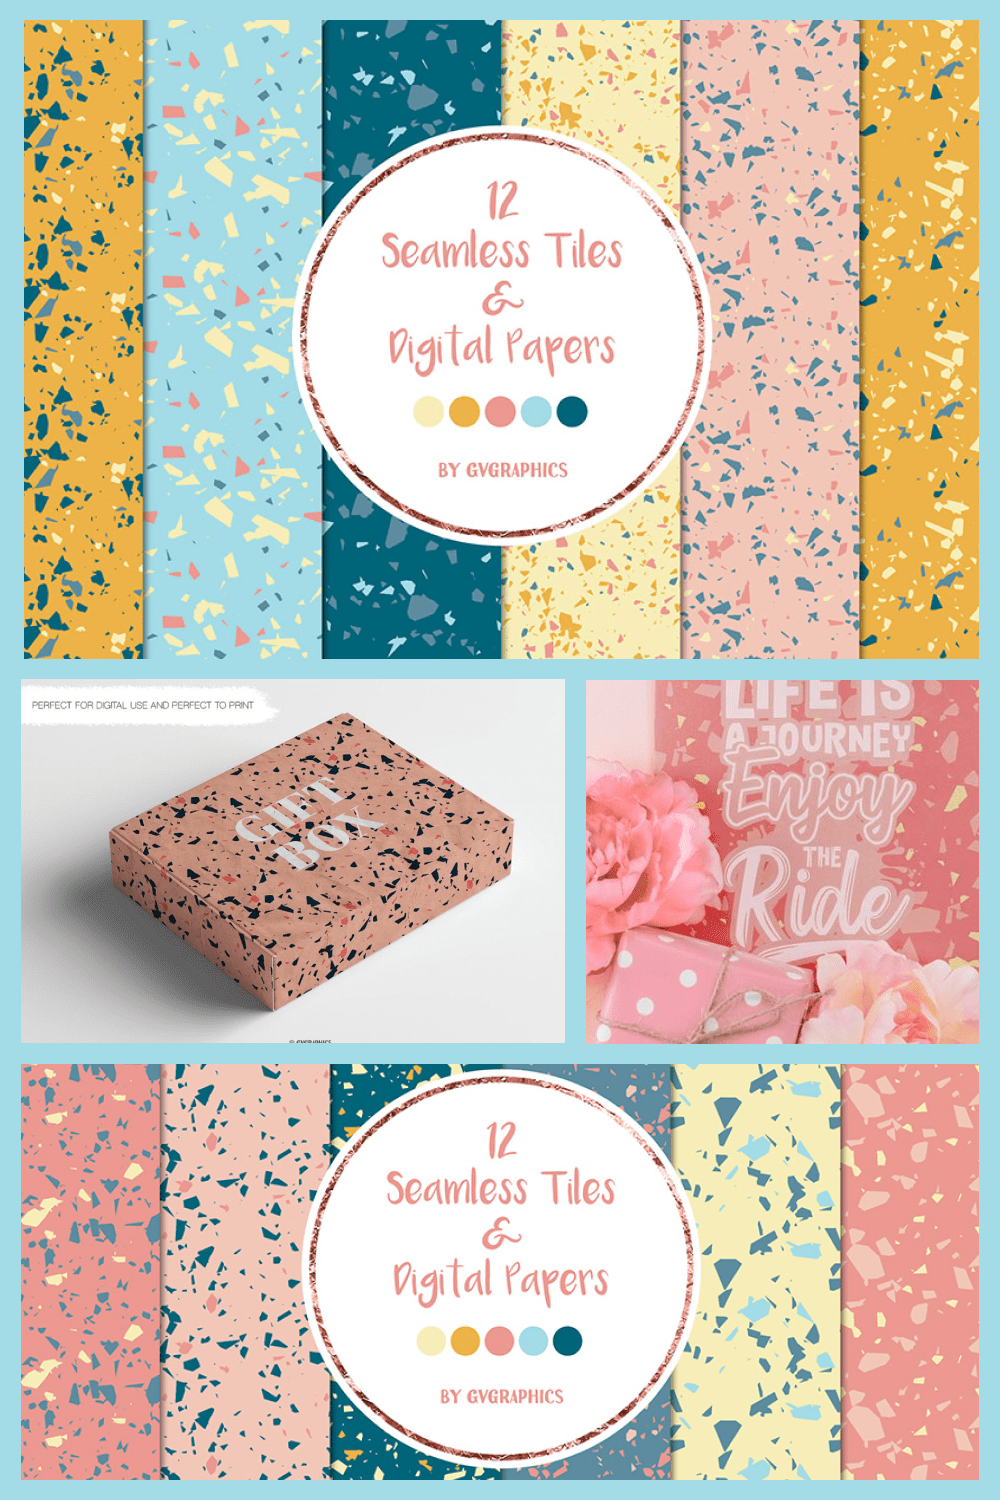 Terrazzo Seamless Tiles and Digital Papers, Colorful patterns - MasterBundles - Pinterest Collage Image.